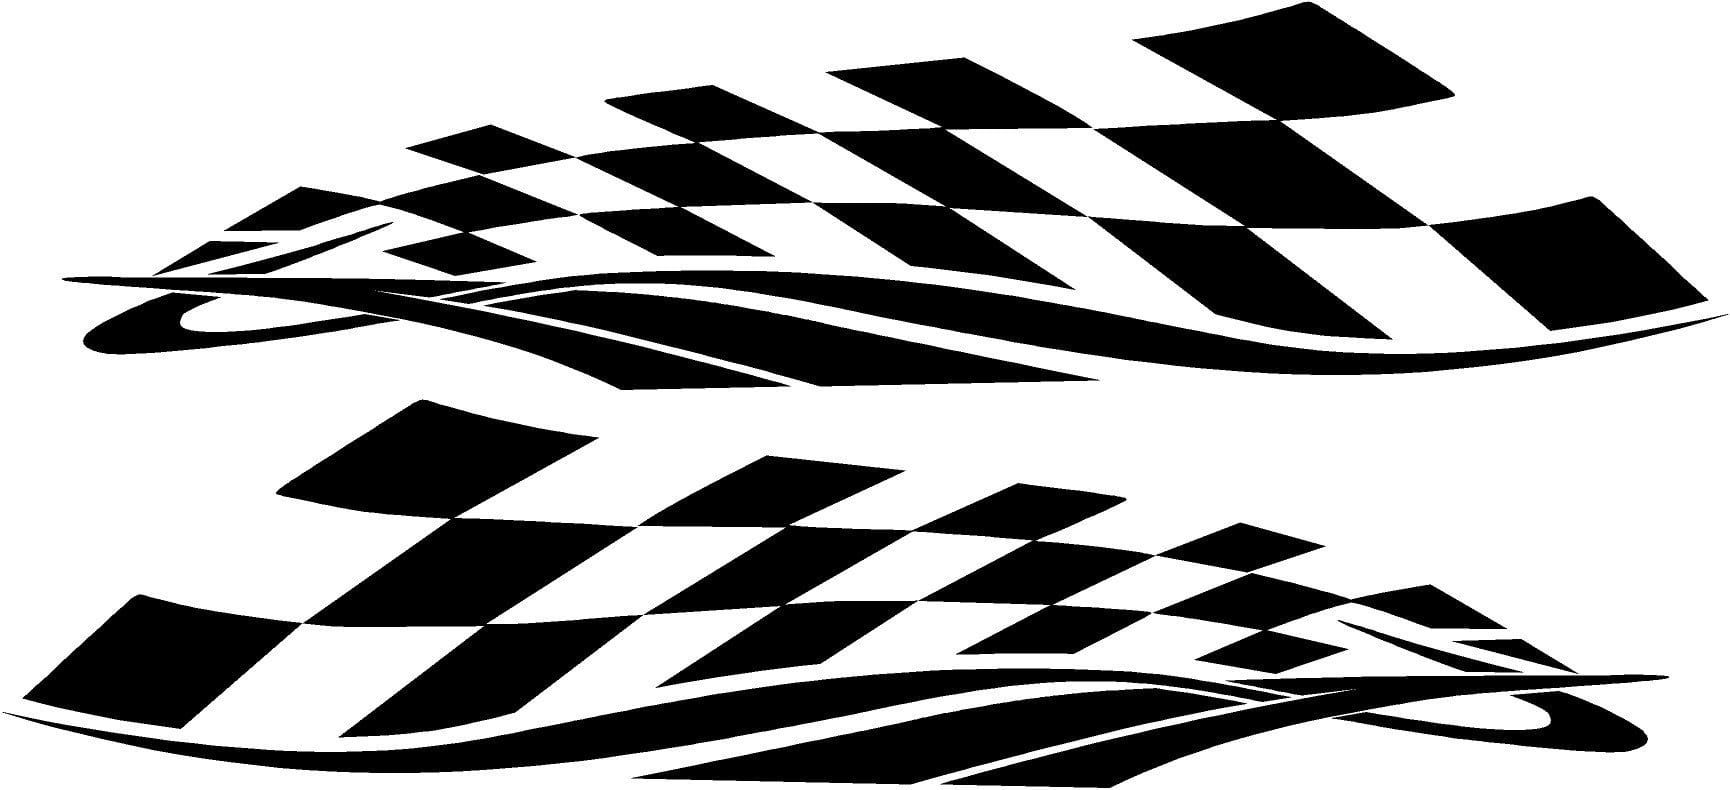 Mustang Decals And Stripes >> Checkered Flag Vinyl Die Cut Racing Decals | Xtreme Digital GraphiX